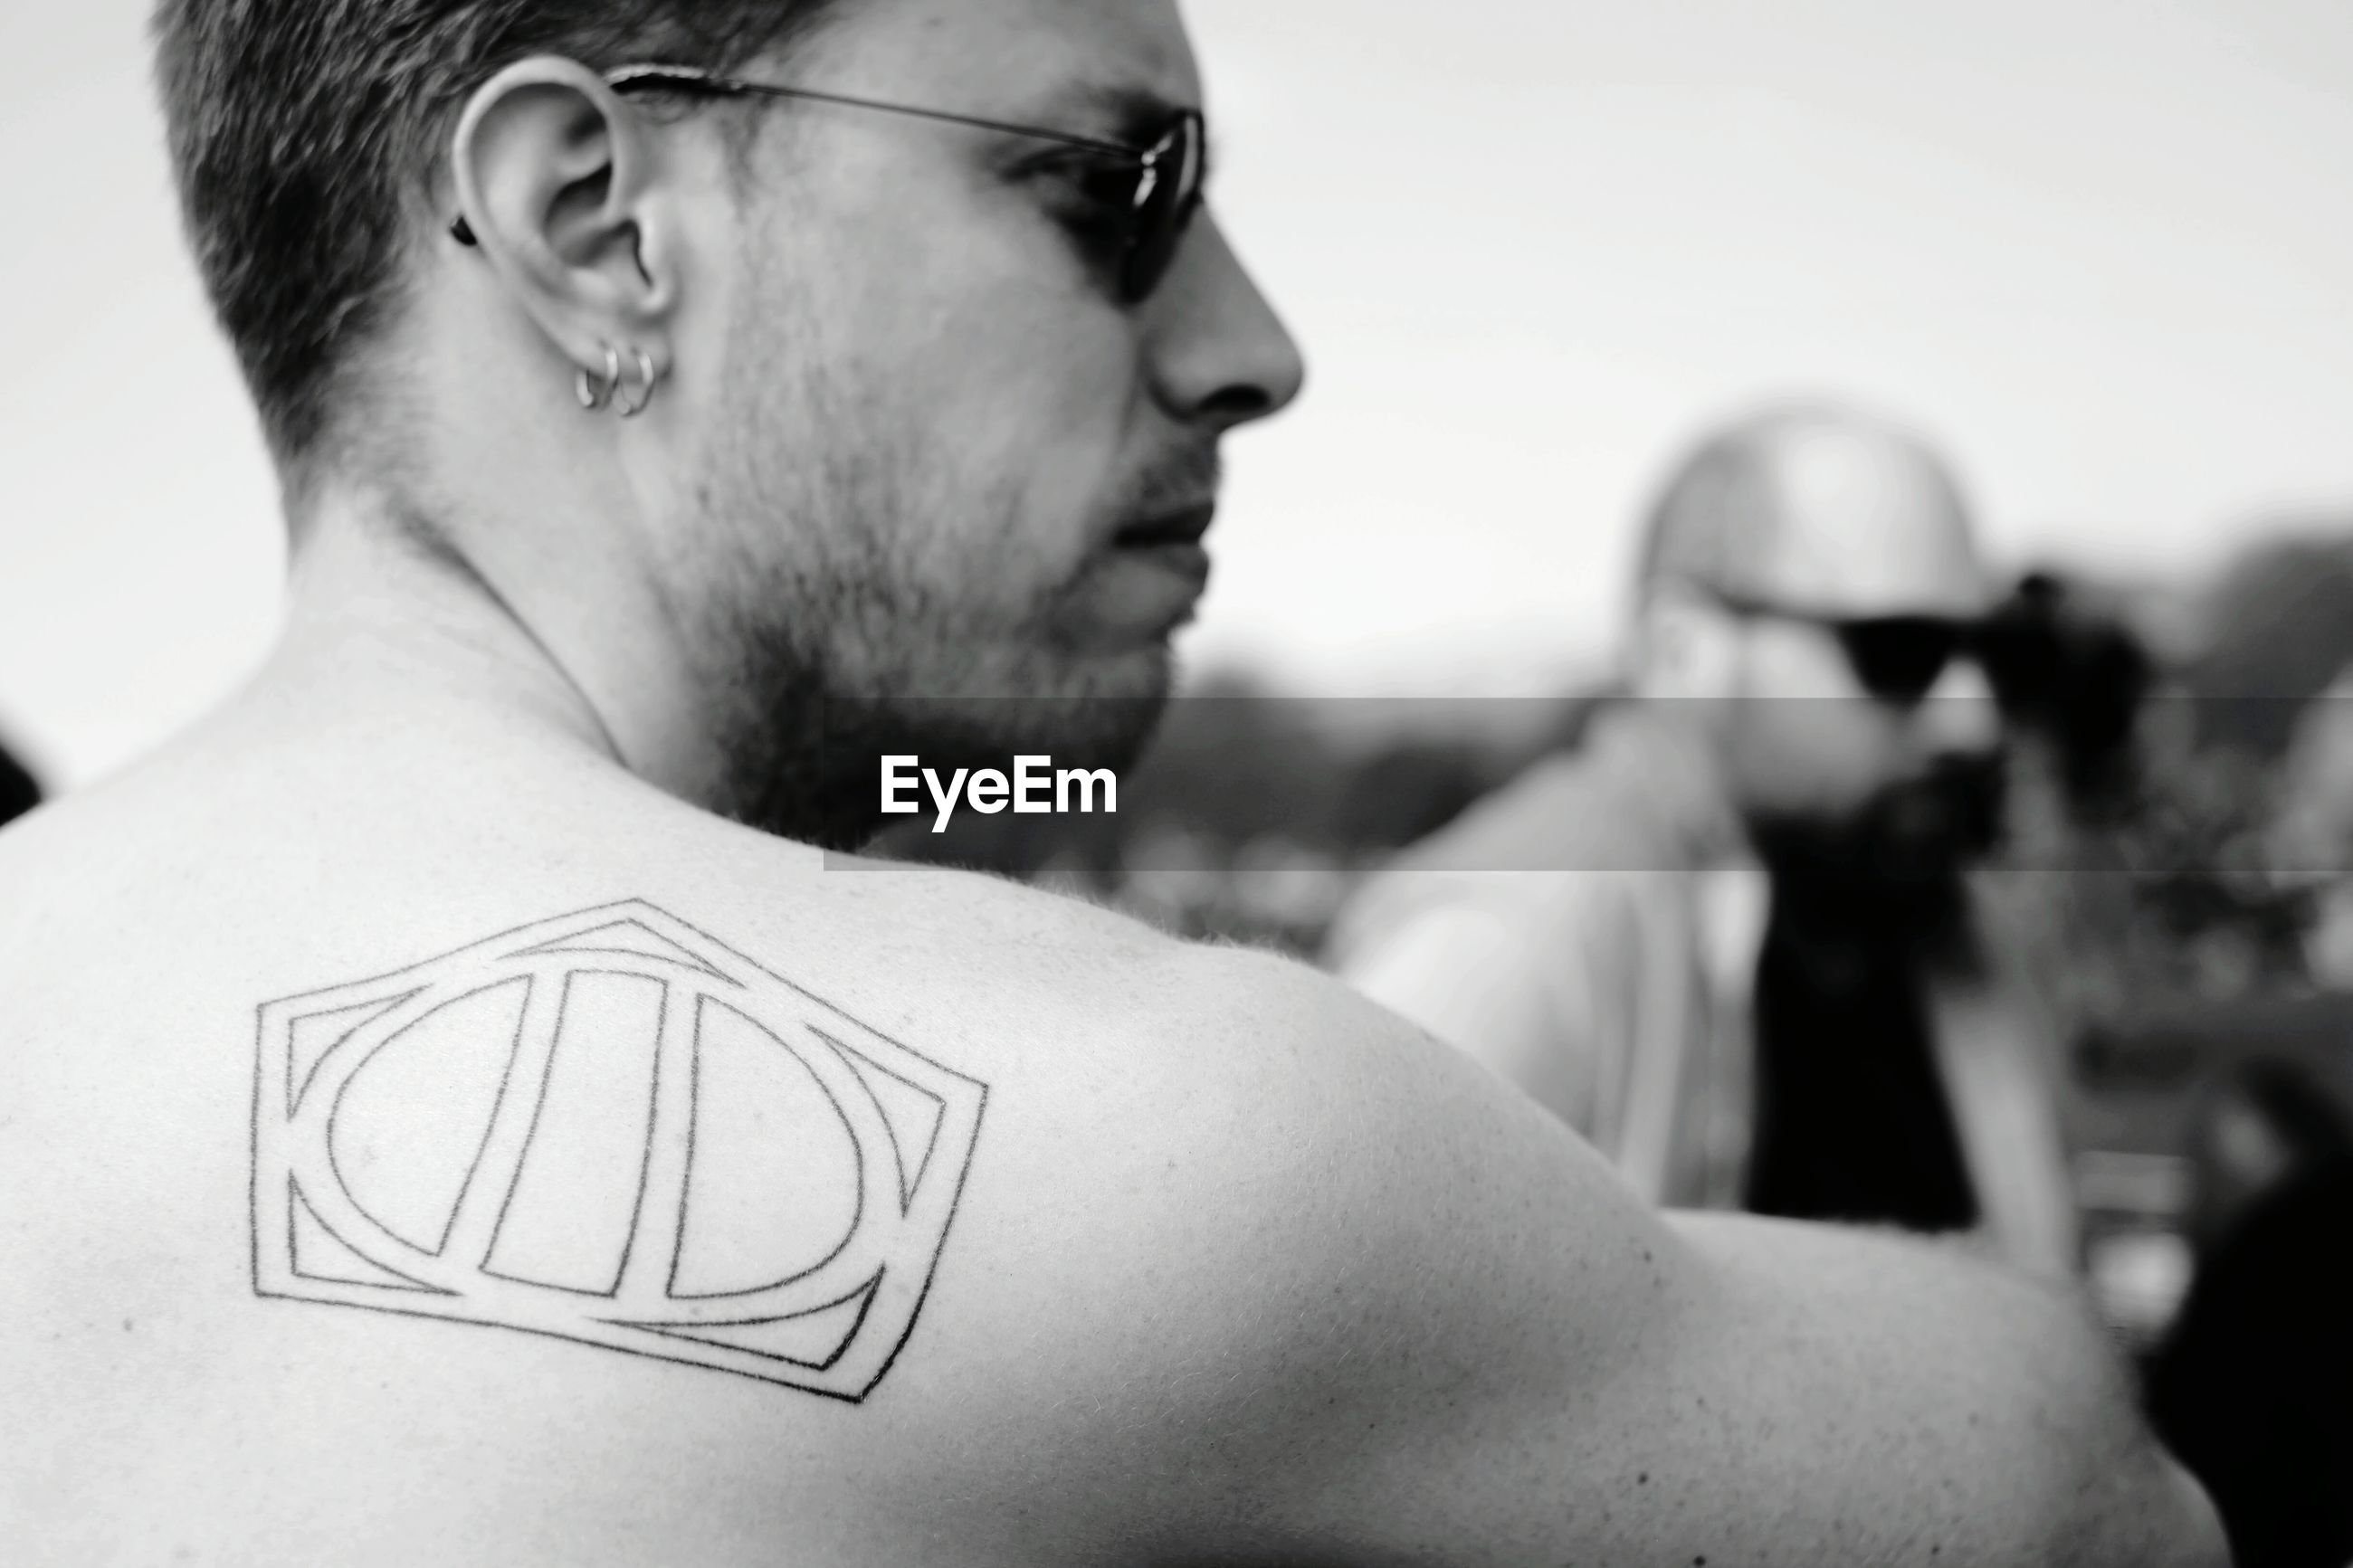 Close-up of shirtless man with tattoo on back